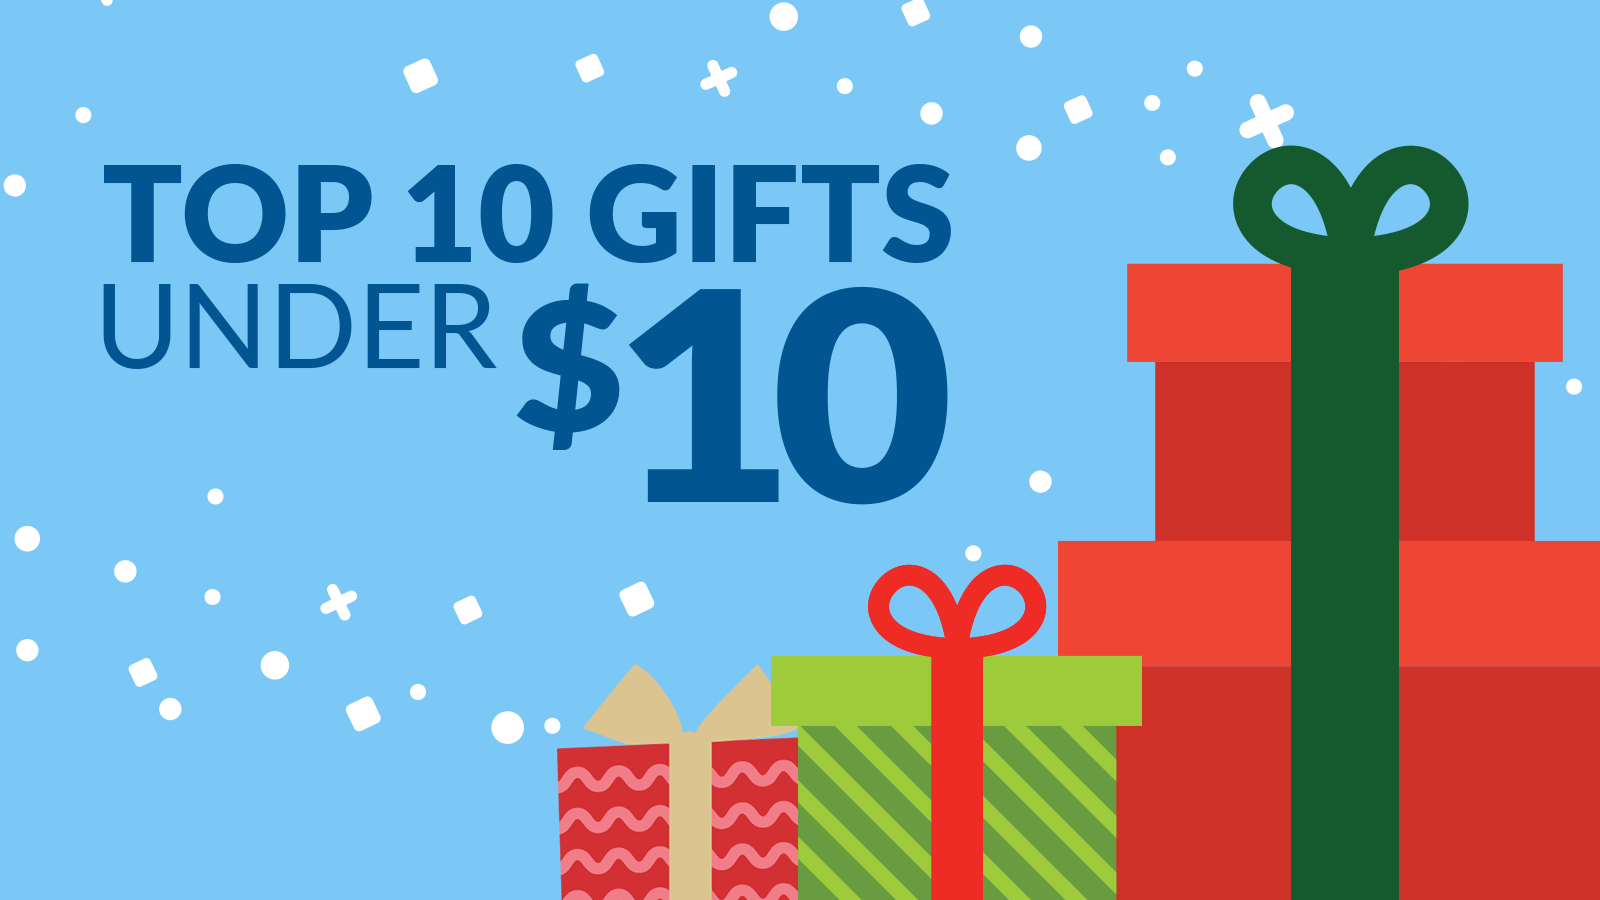 Top 10 Gifts Under $10